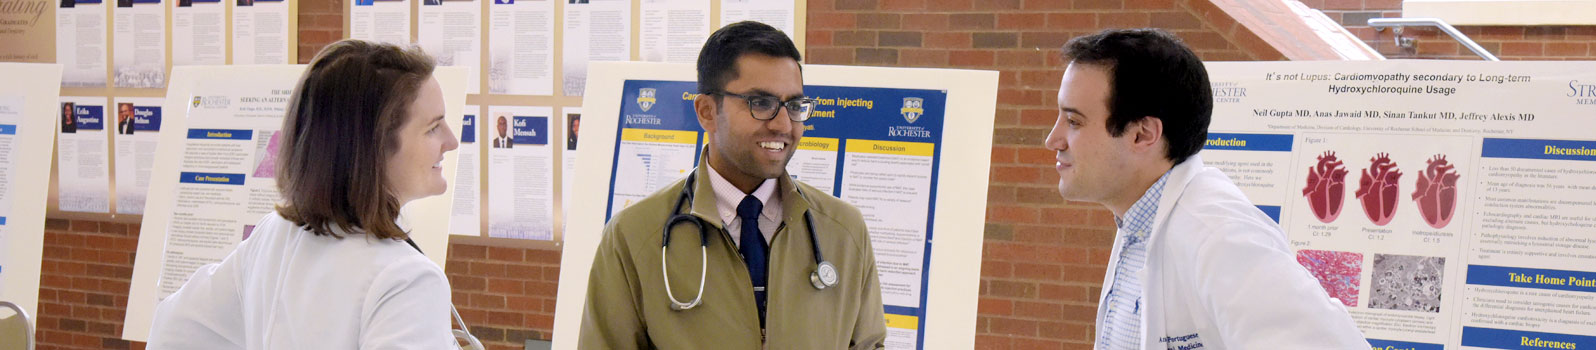 Residents discuss their latest clinical endeavors at Resident Poster Day